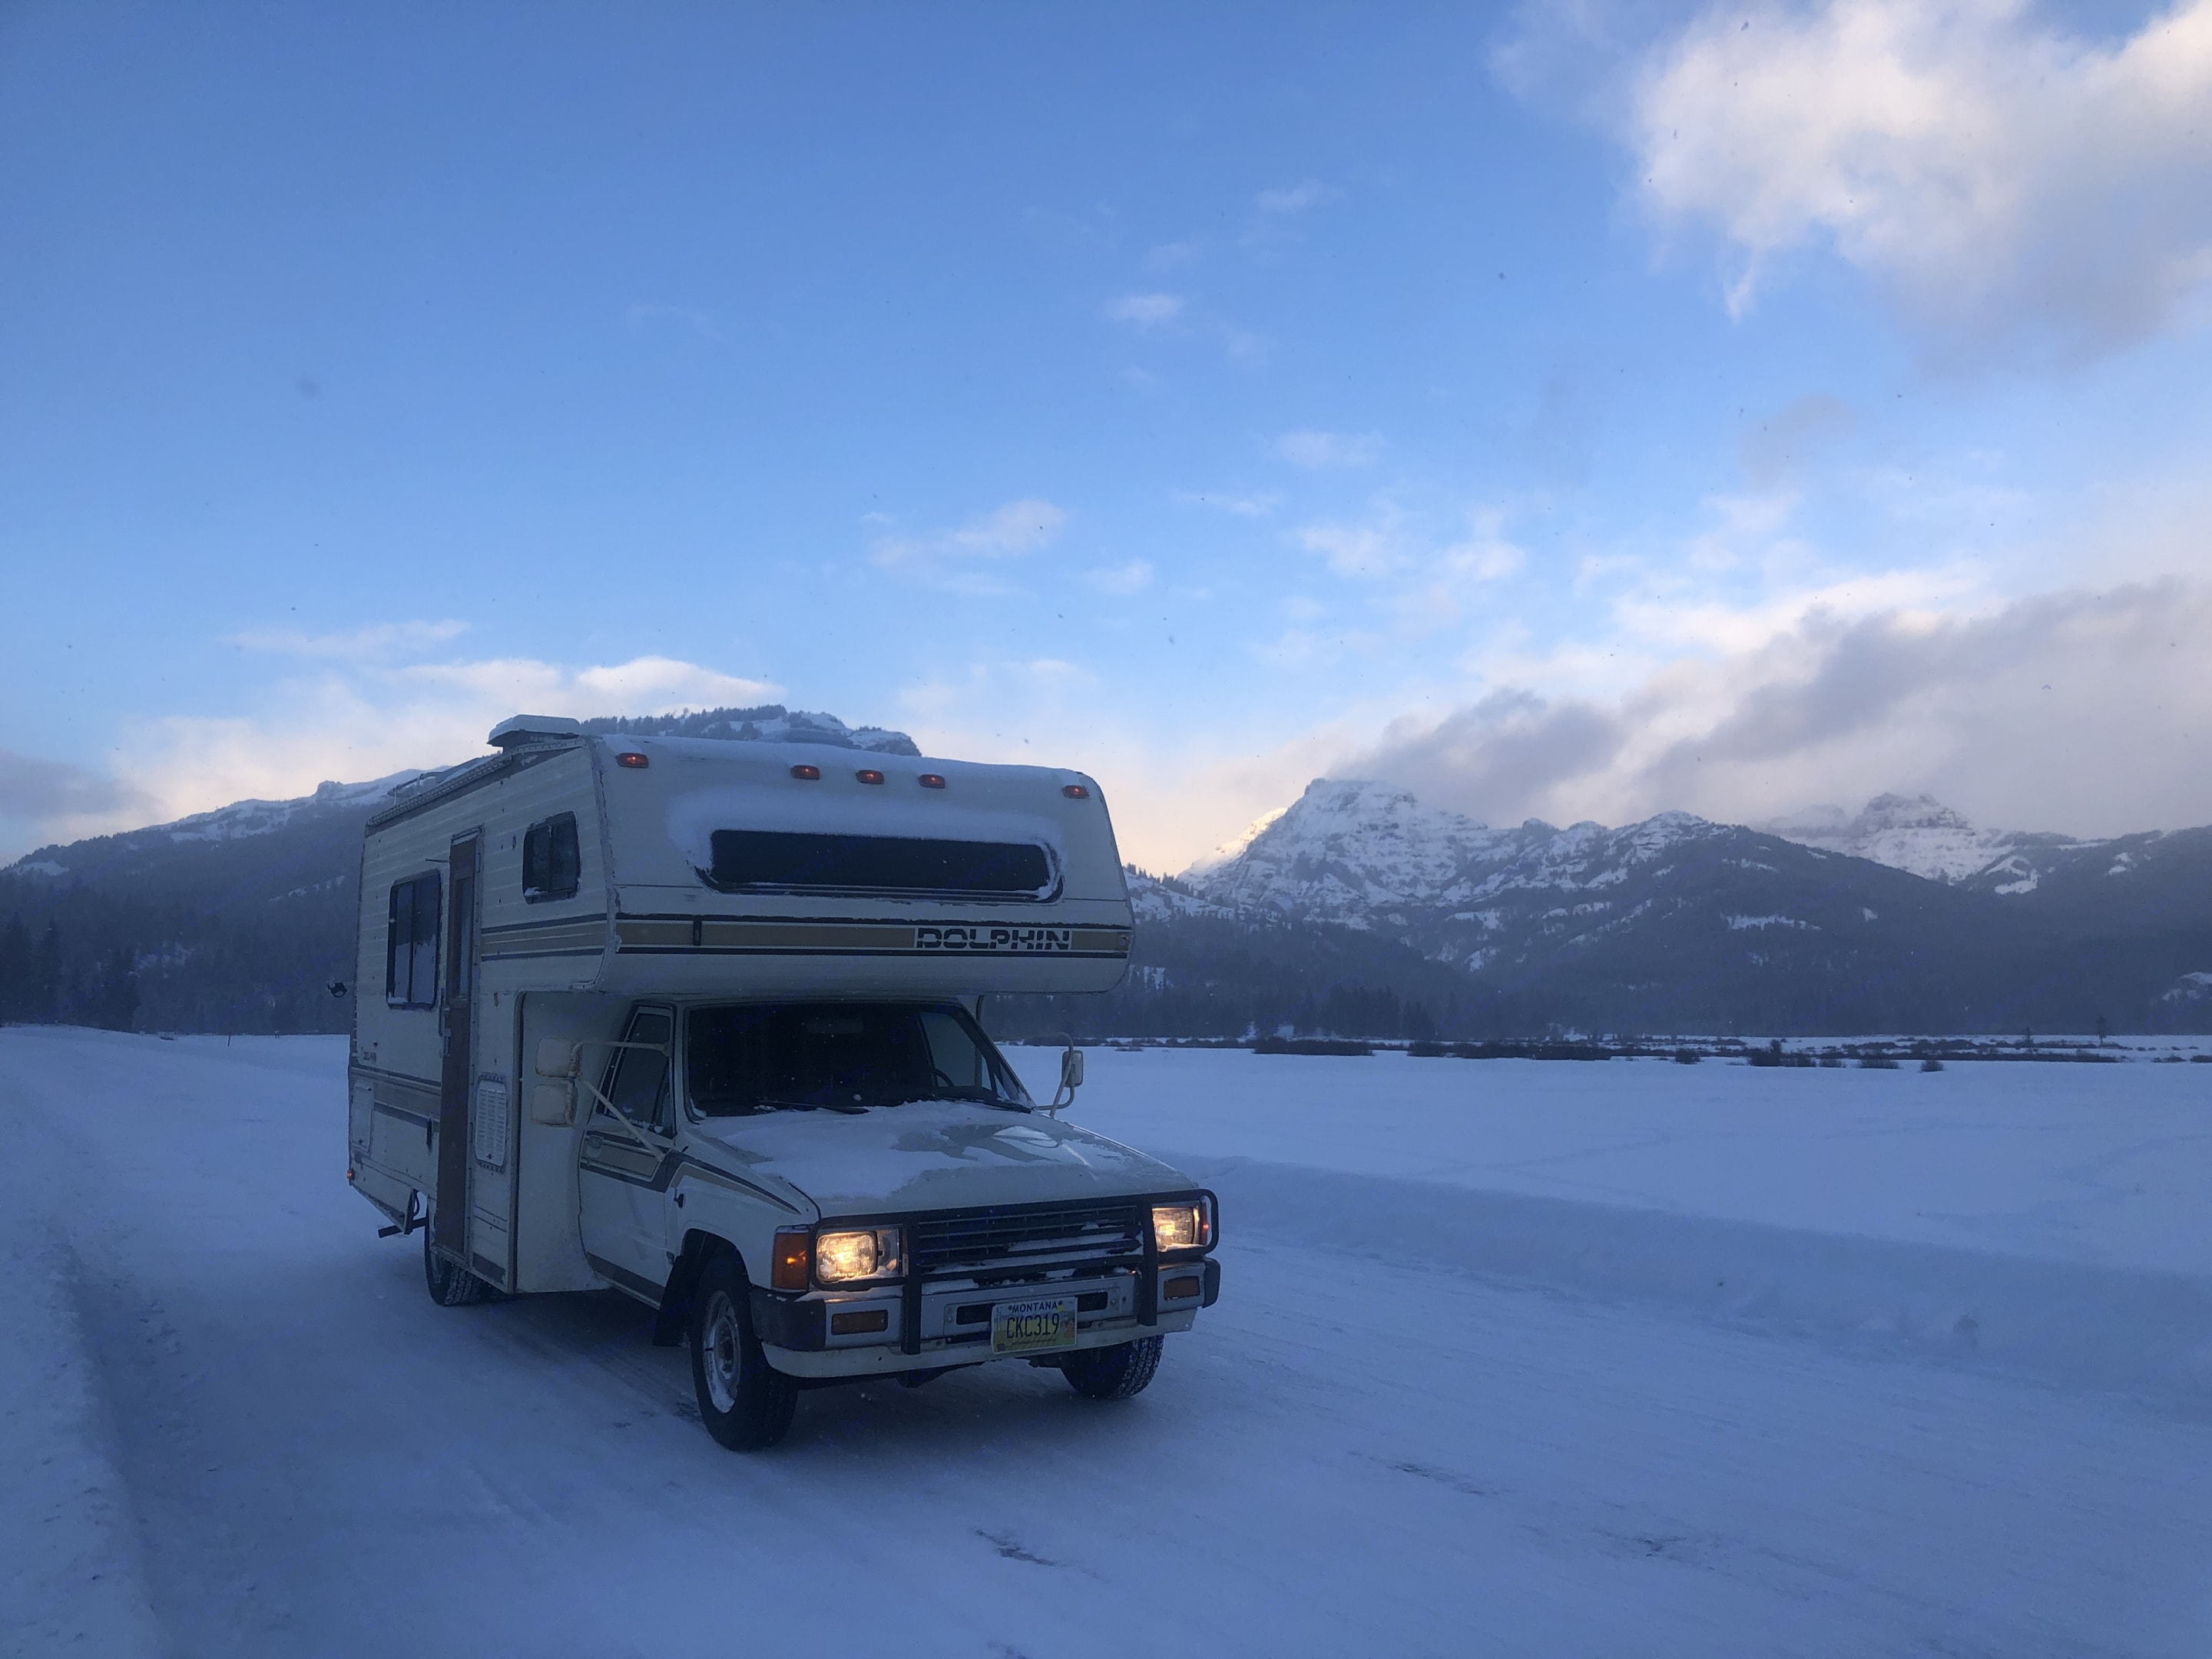 Backcountry ski trip to Cooke City 2021. National Dolphin 1986